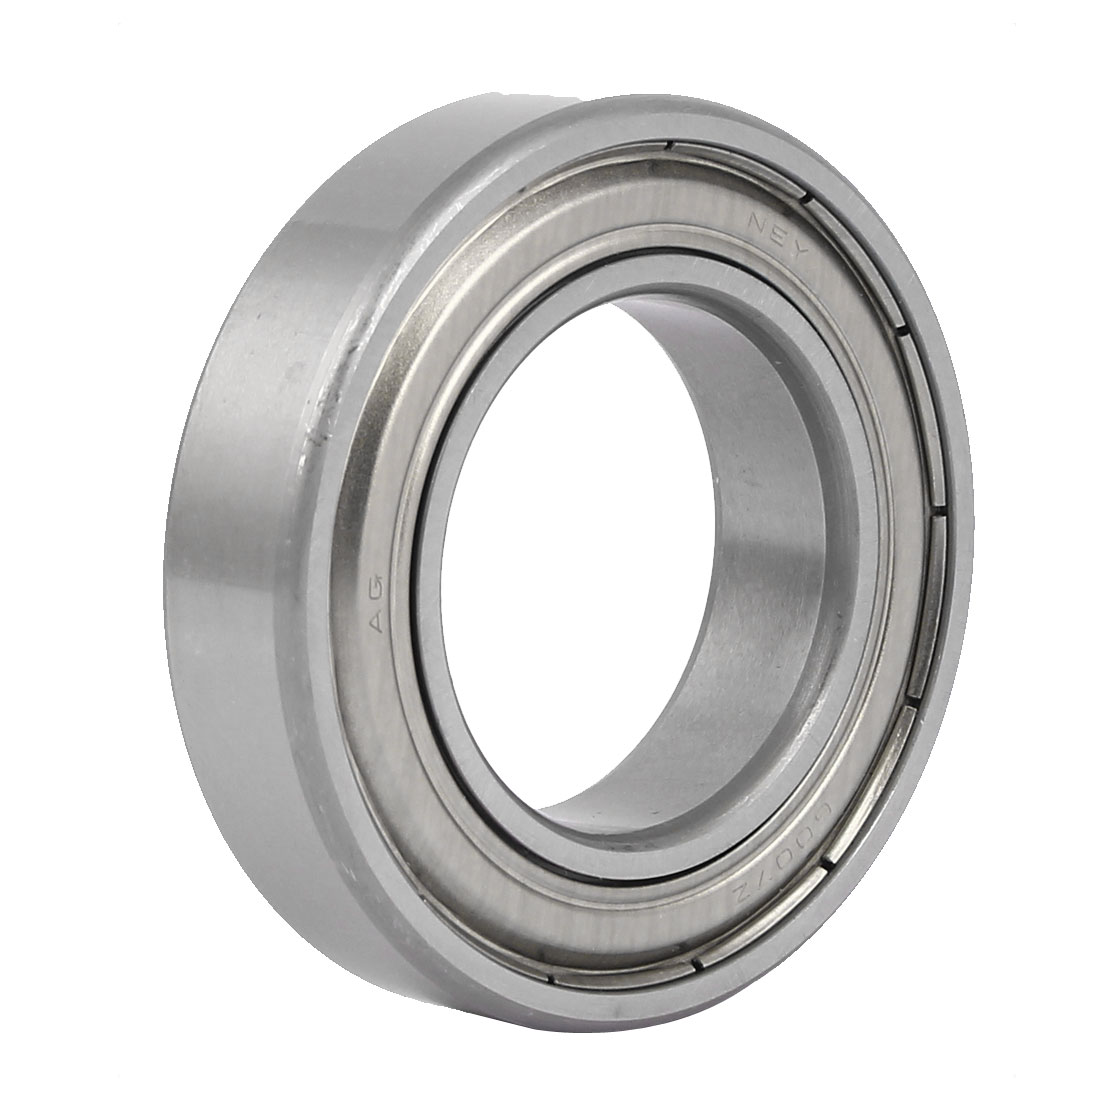 ZZ6011 18mm x 55mm x 90mm Shielded Radial Miniature Deep Groove Ball Bearing